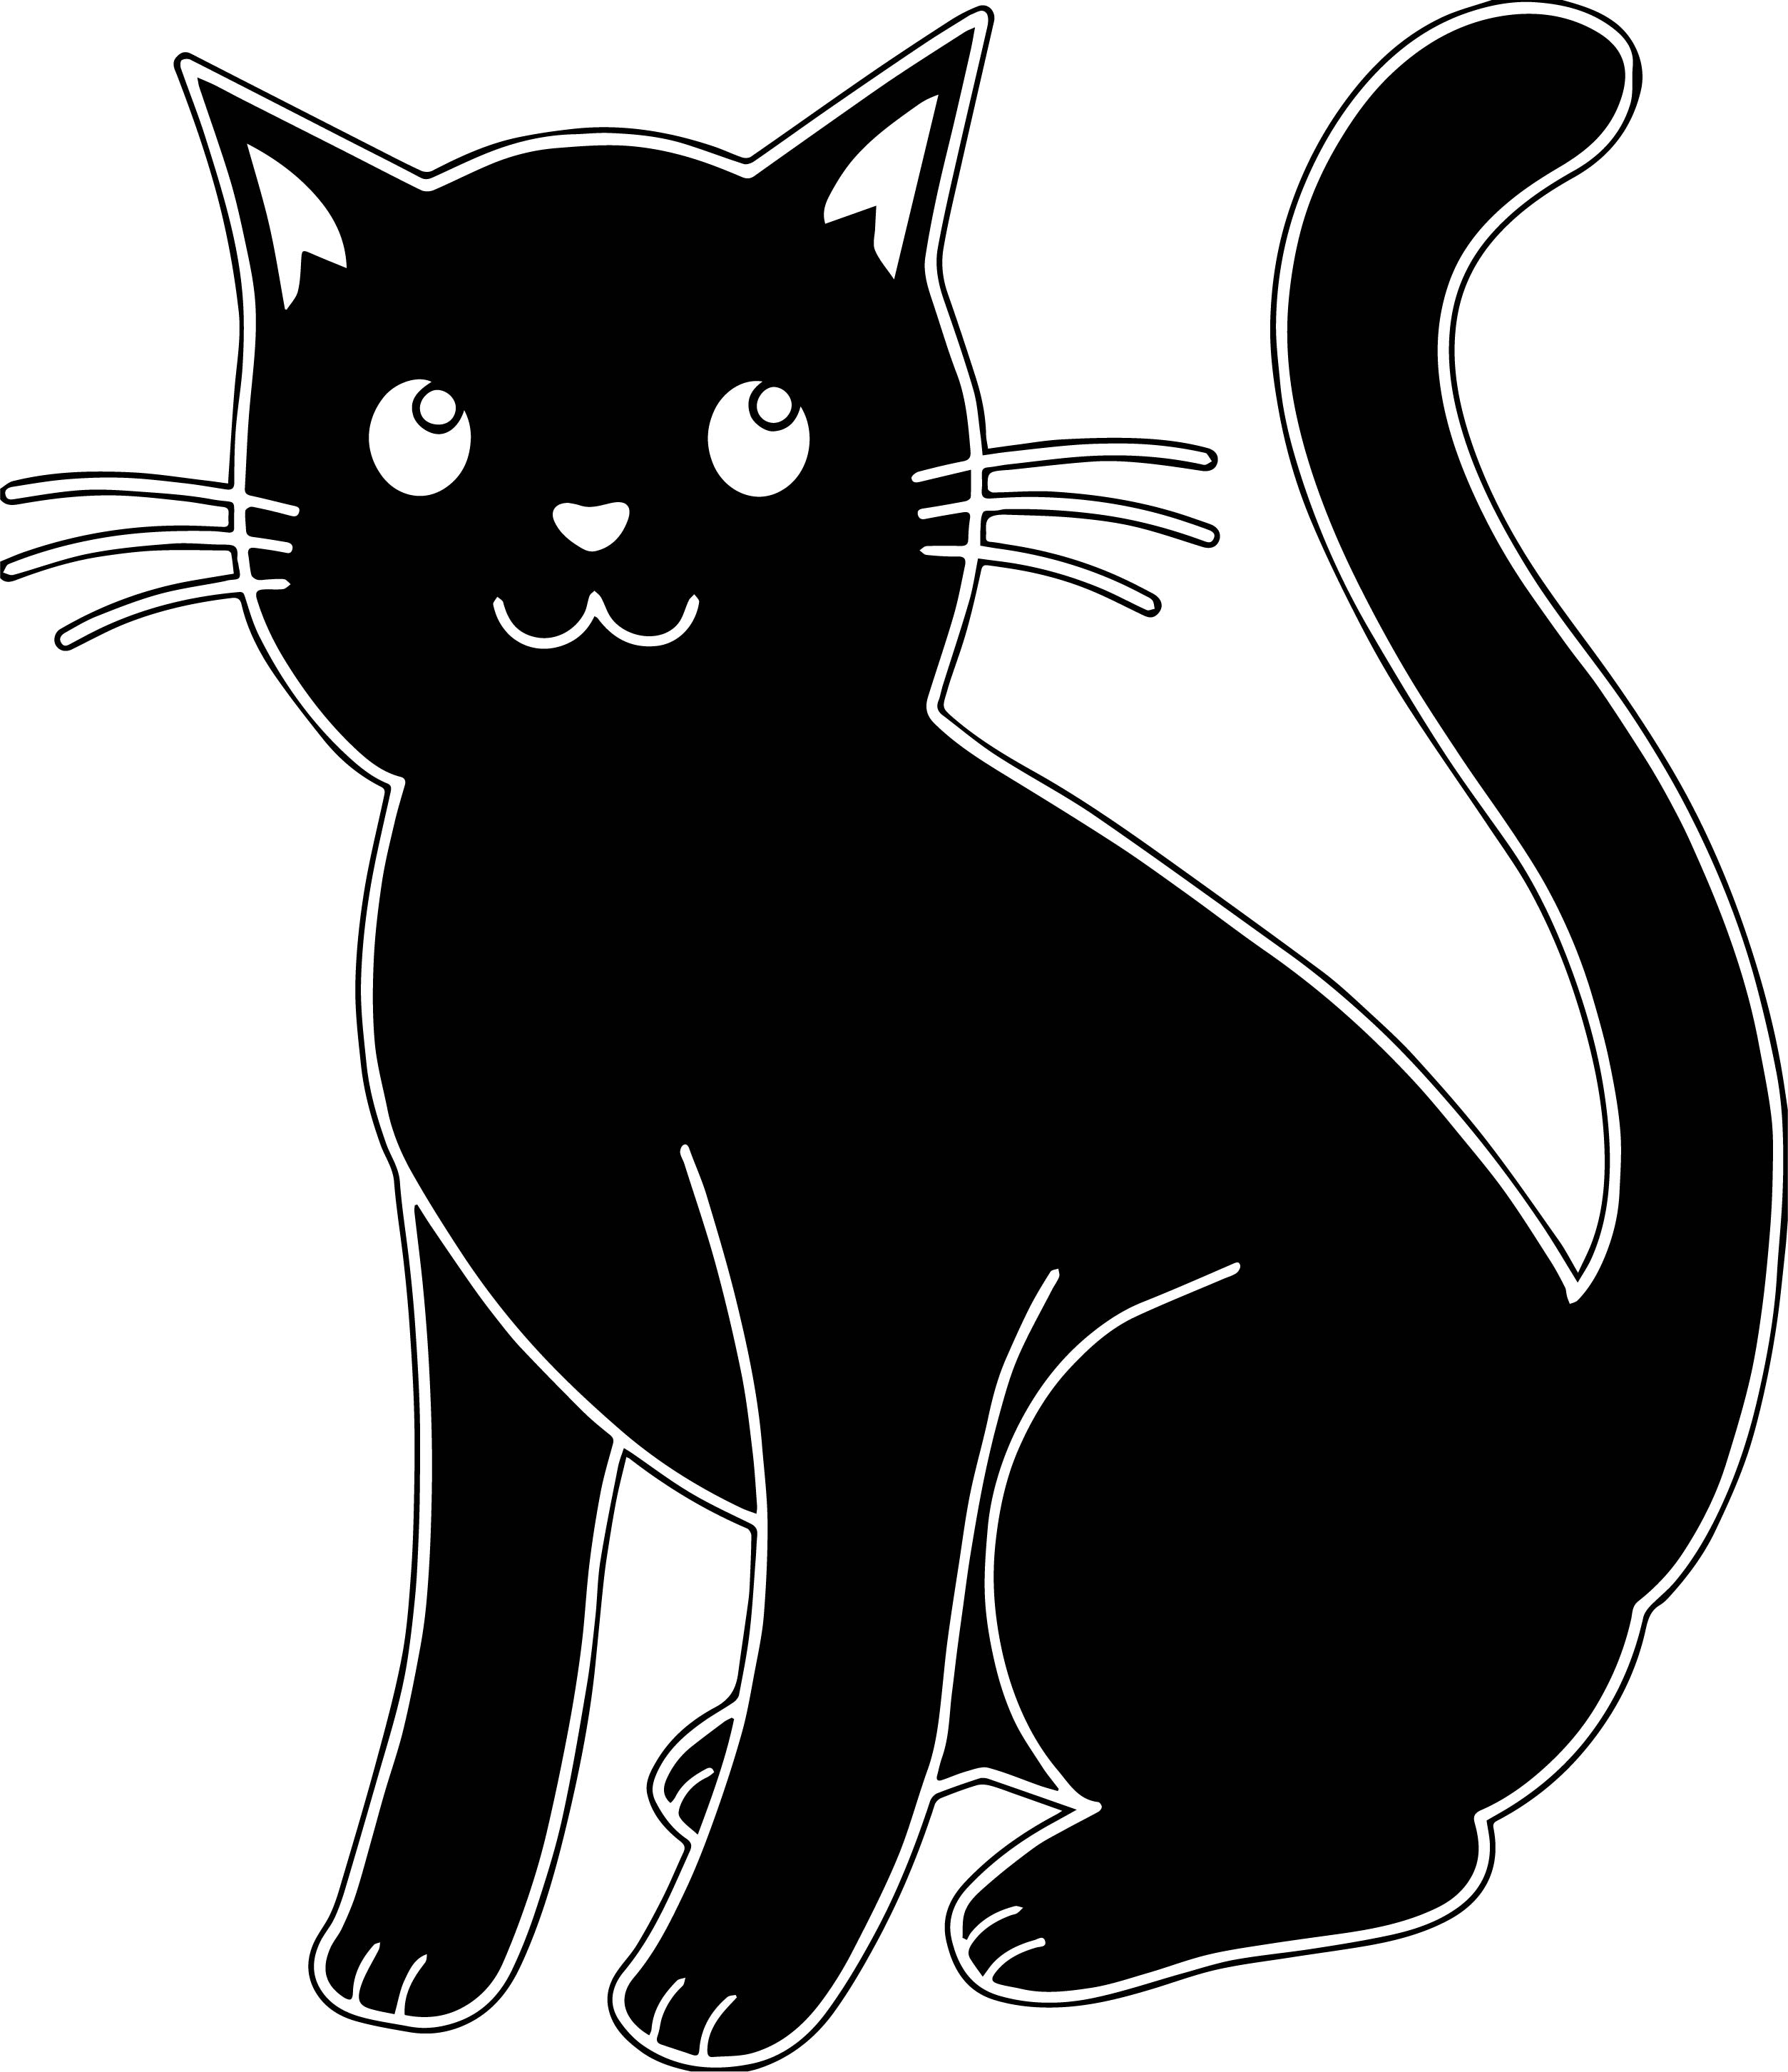 Blach Cute Cat Coloring Page